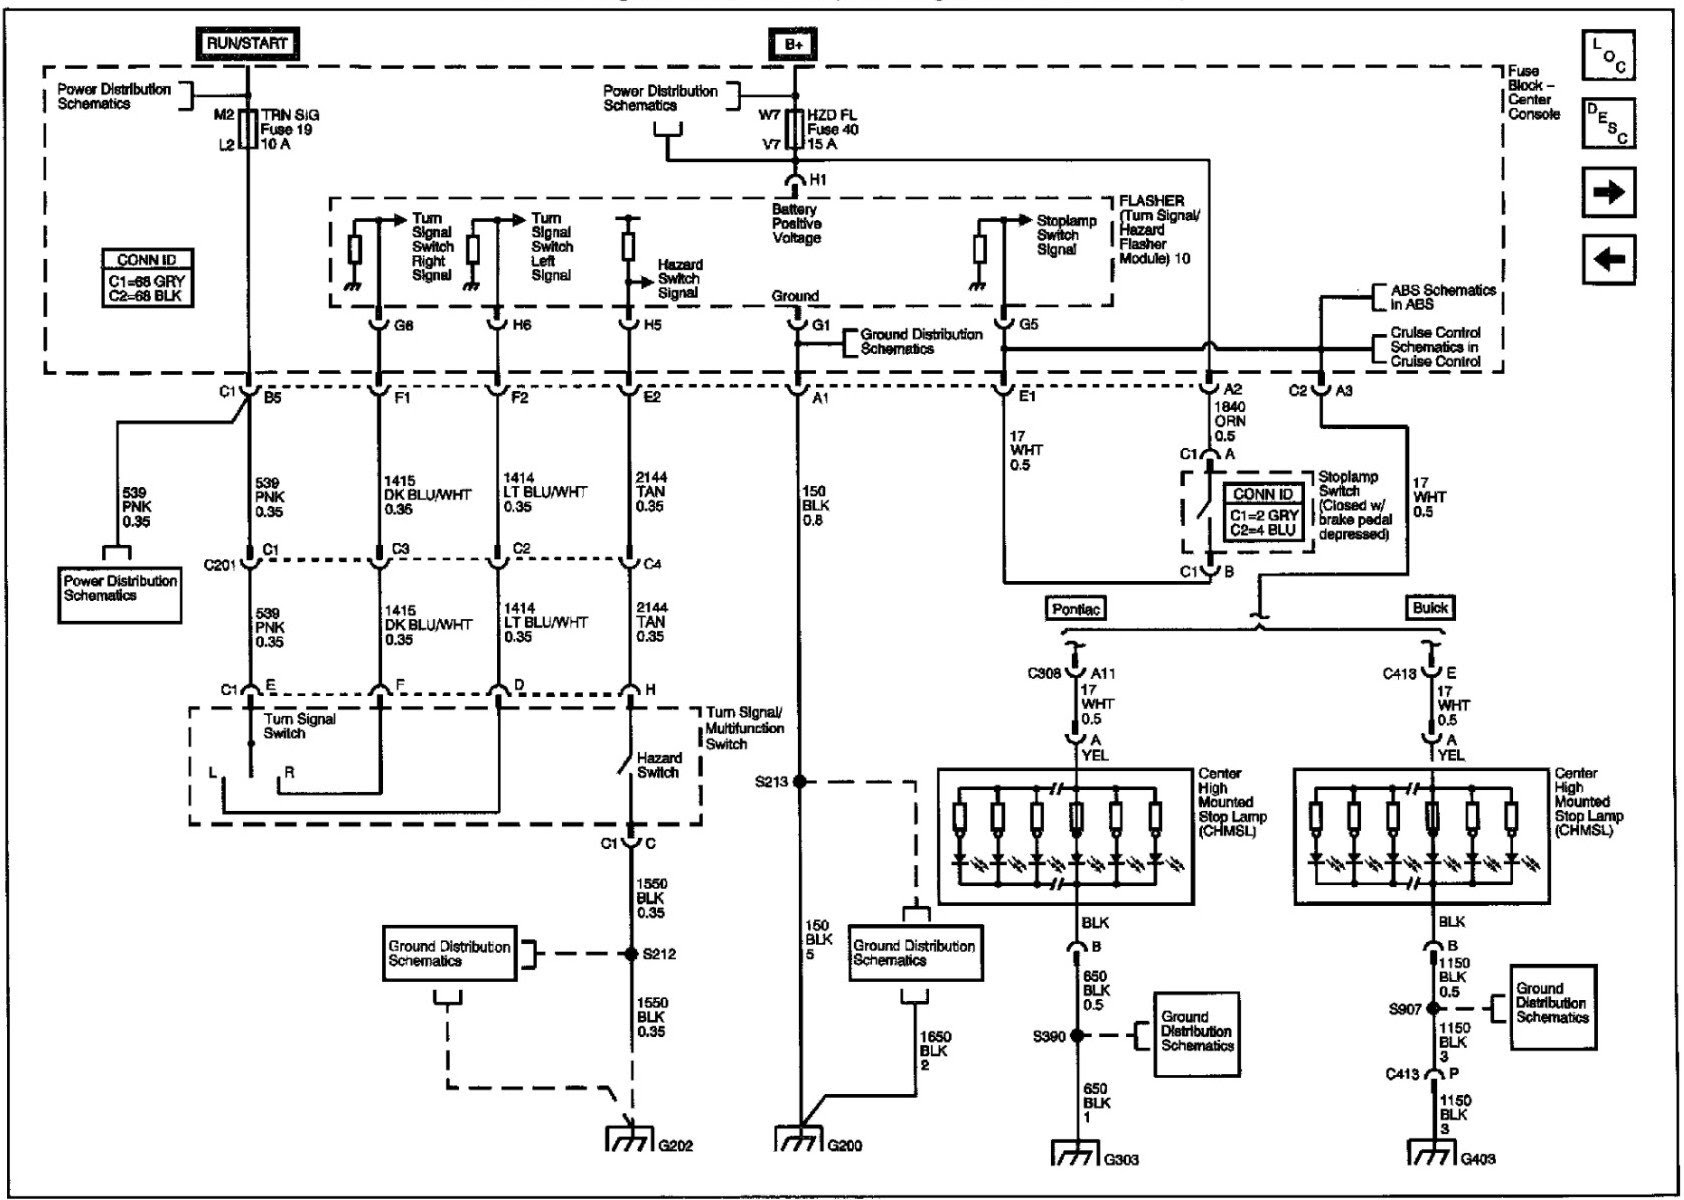 Diagram 2001 Grand Am Stereo Wiring Diagram Full Version Hd Quality Wiring Diagram Diagramlyner Ecoldo It